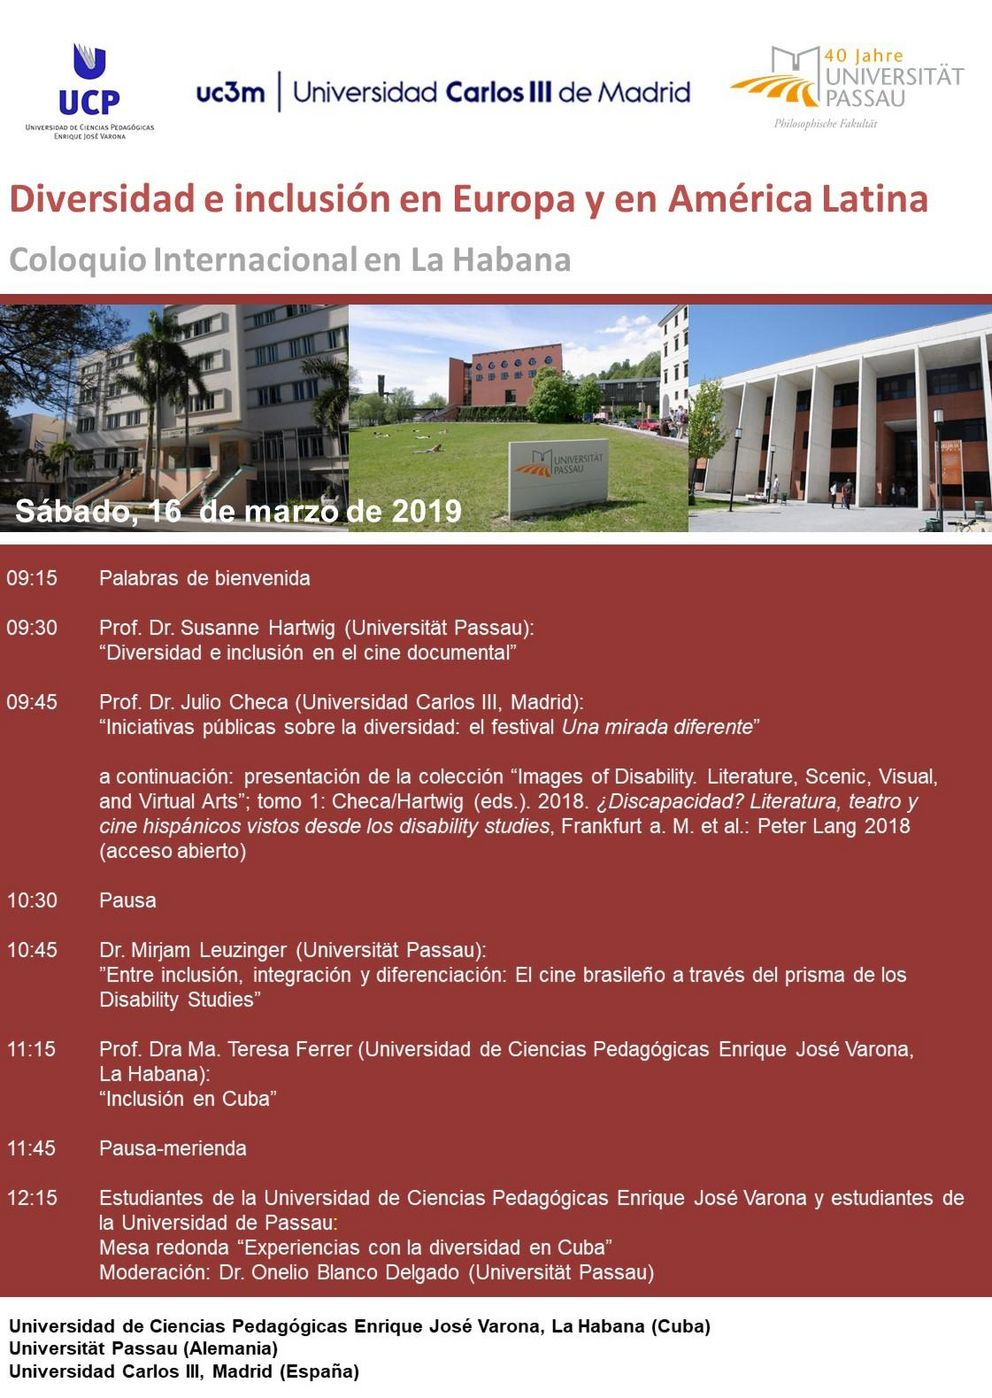 Plakat zum Internationalen Kolloquium in Havanna